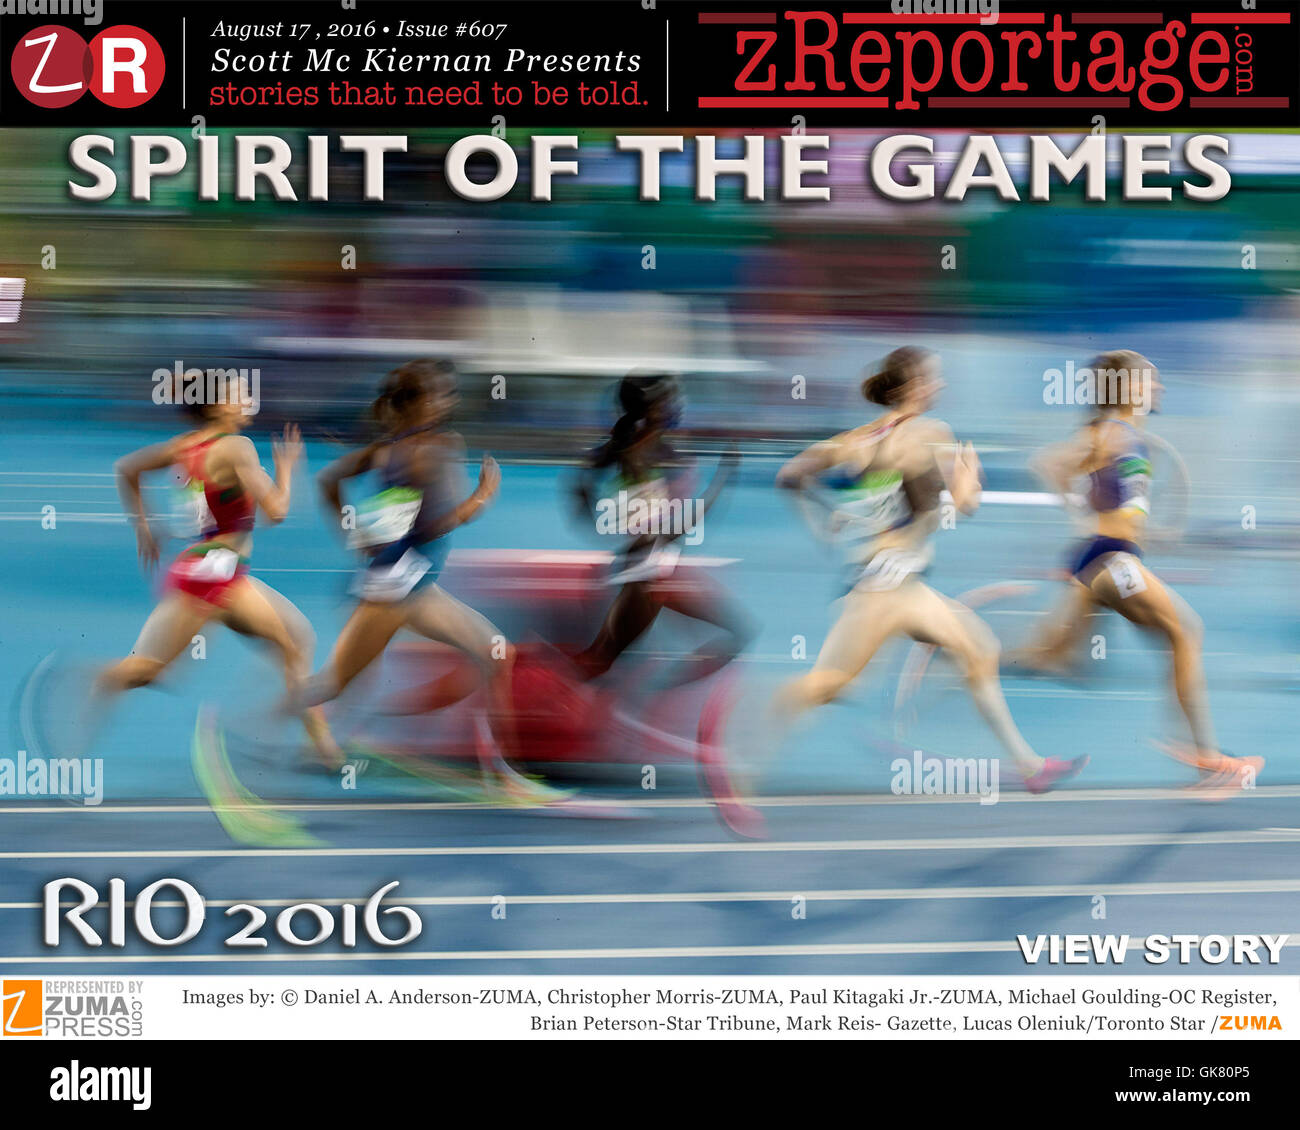 zReportage.com Story of the Week # 607 - RIO 2016 - Spirit Of The Games - Launched August 17, 2016 - Full multimedia - Stock Image